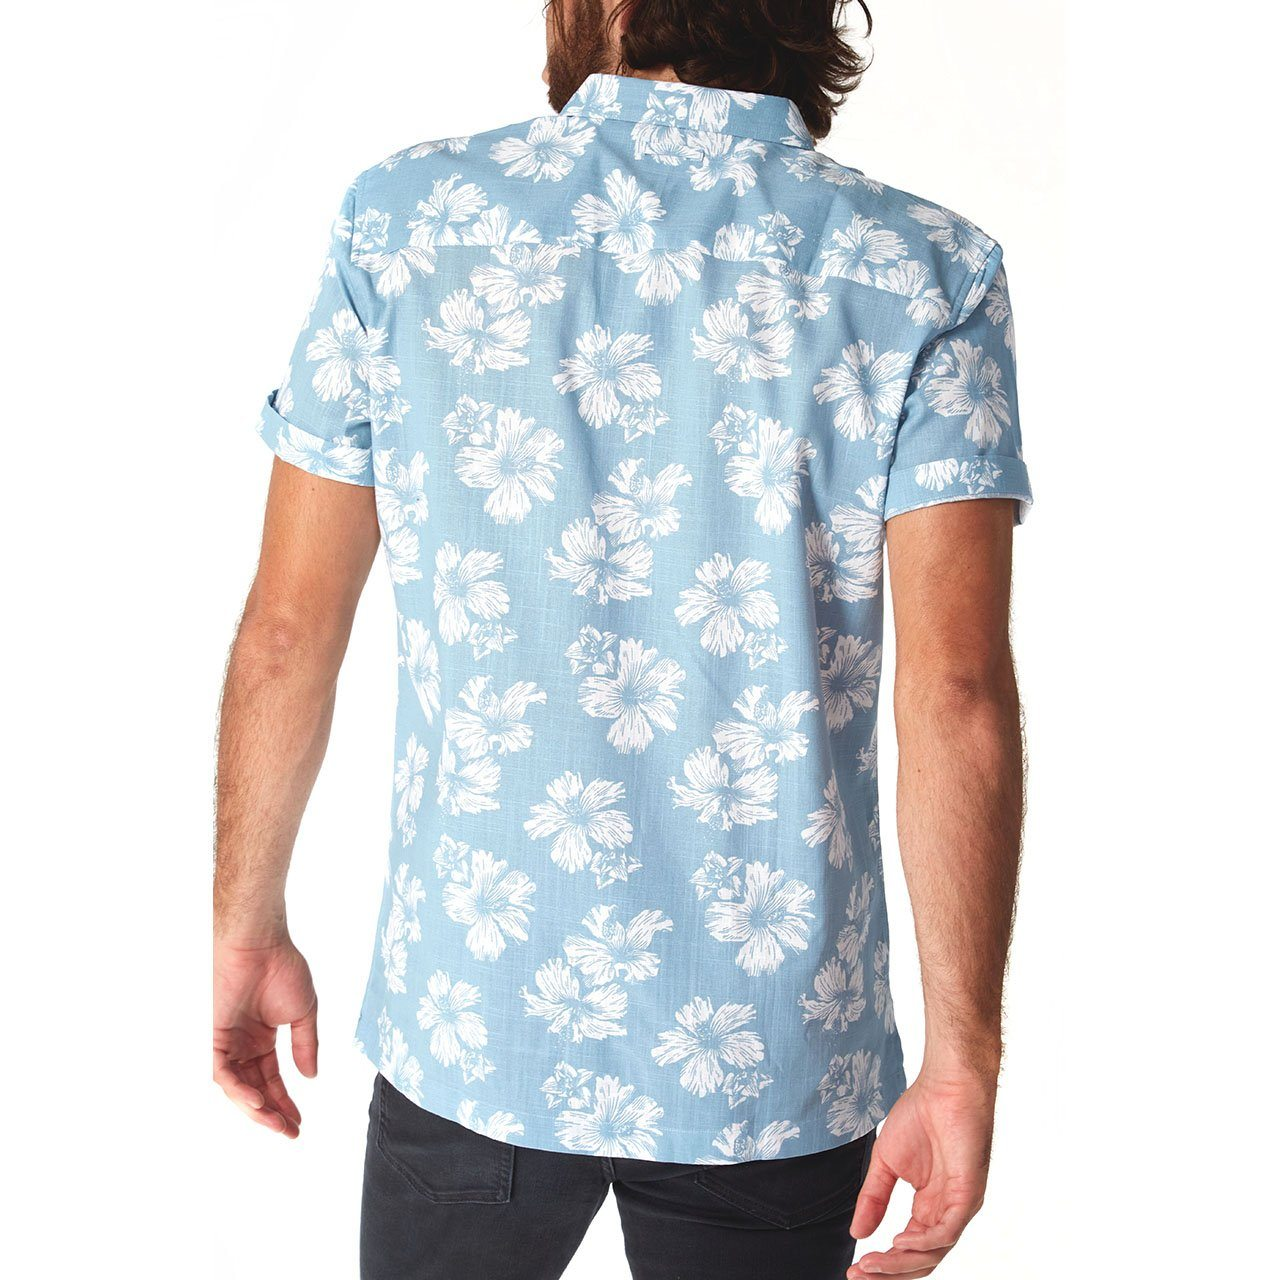 Short Sleeve Shirt, Shirt - Spencer Floral Shirt